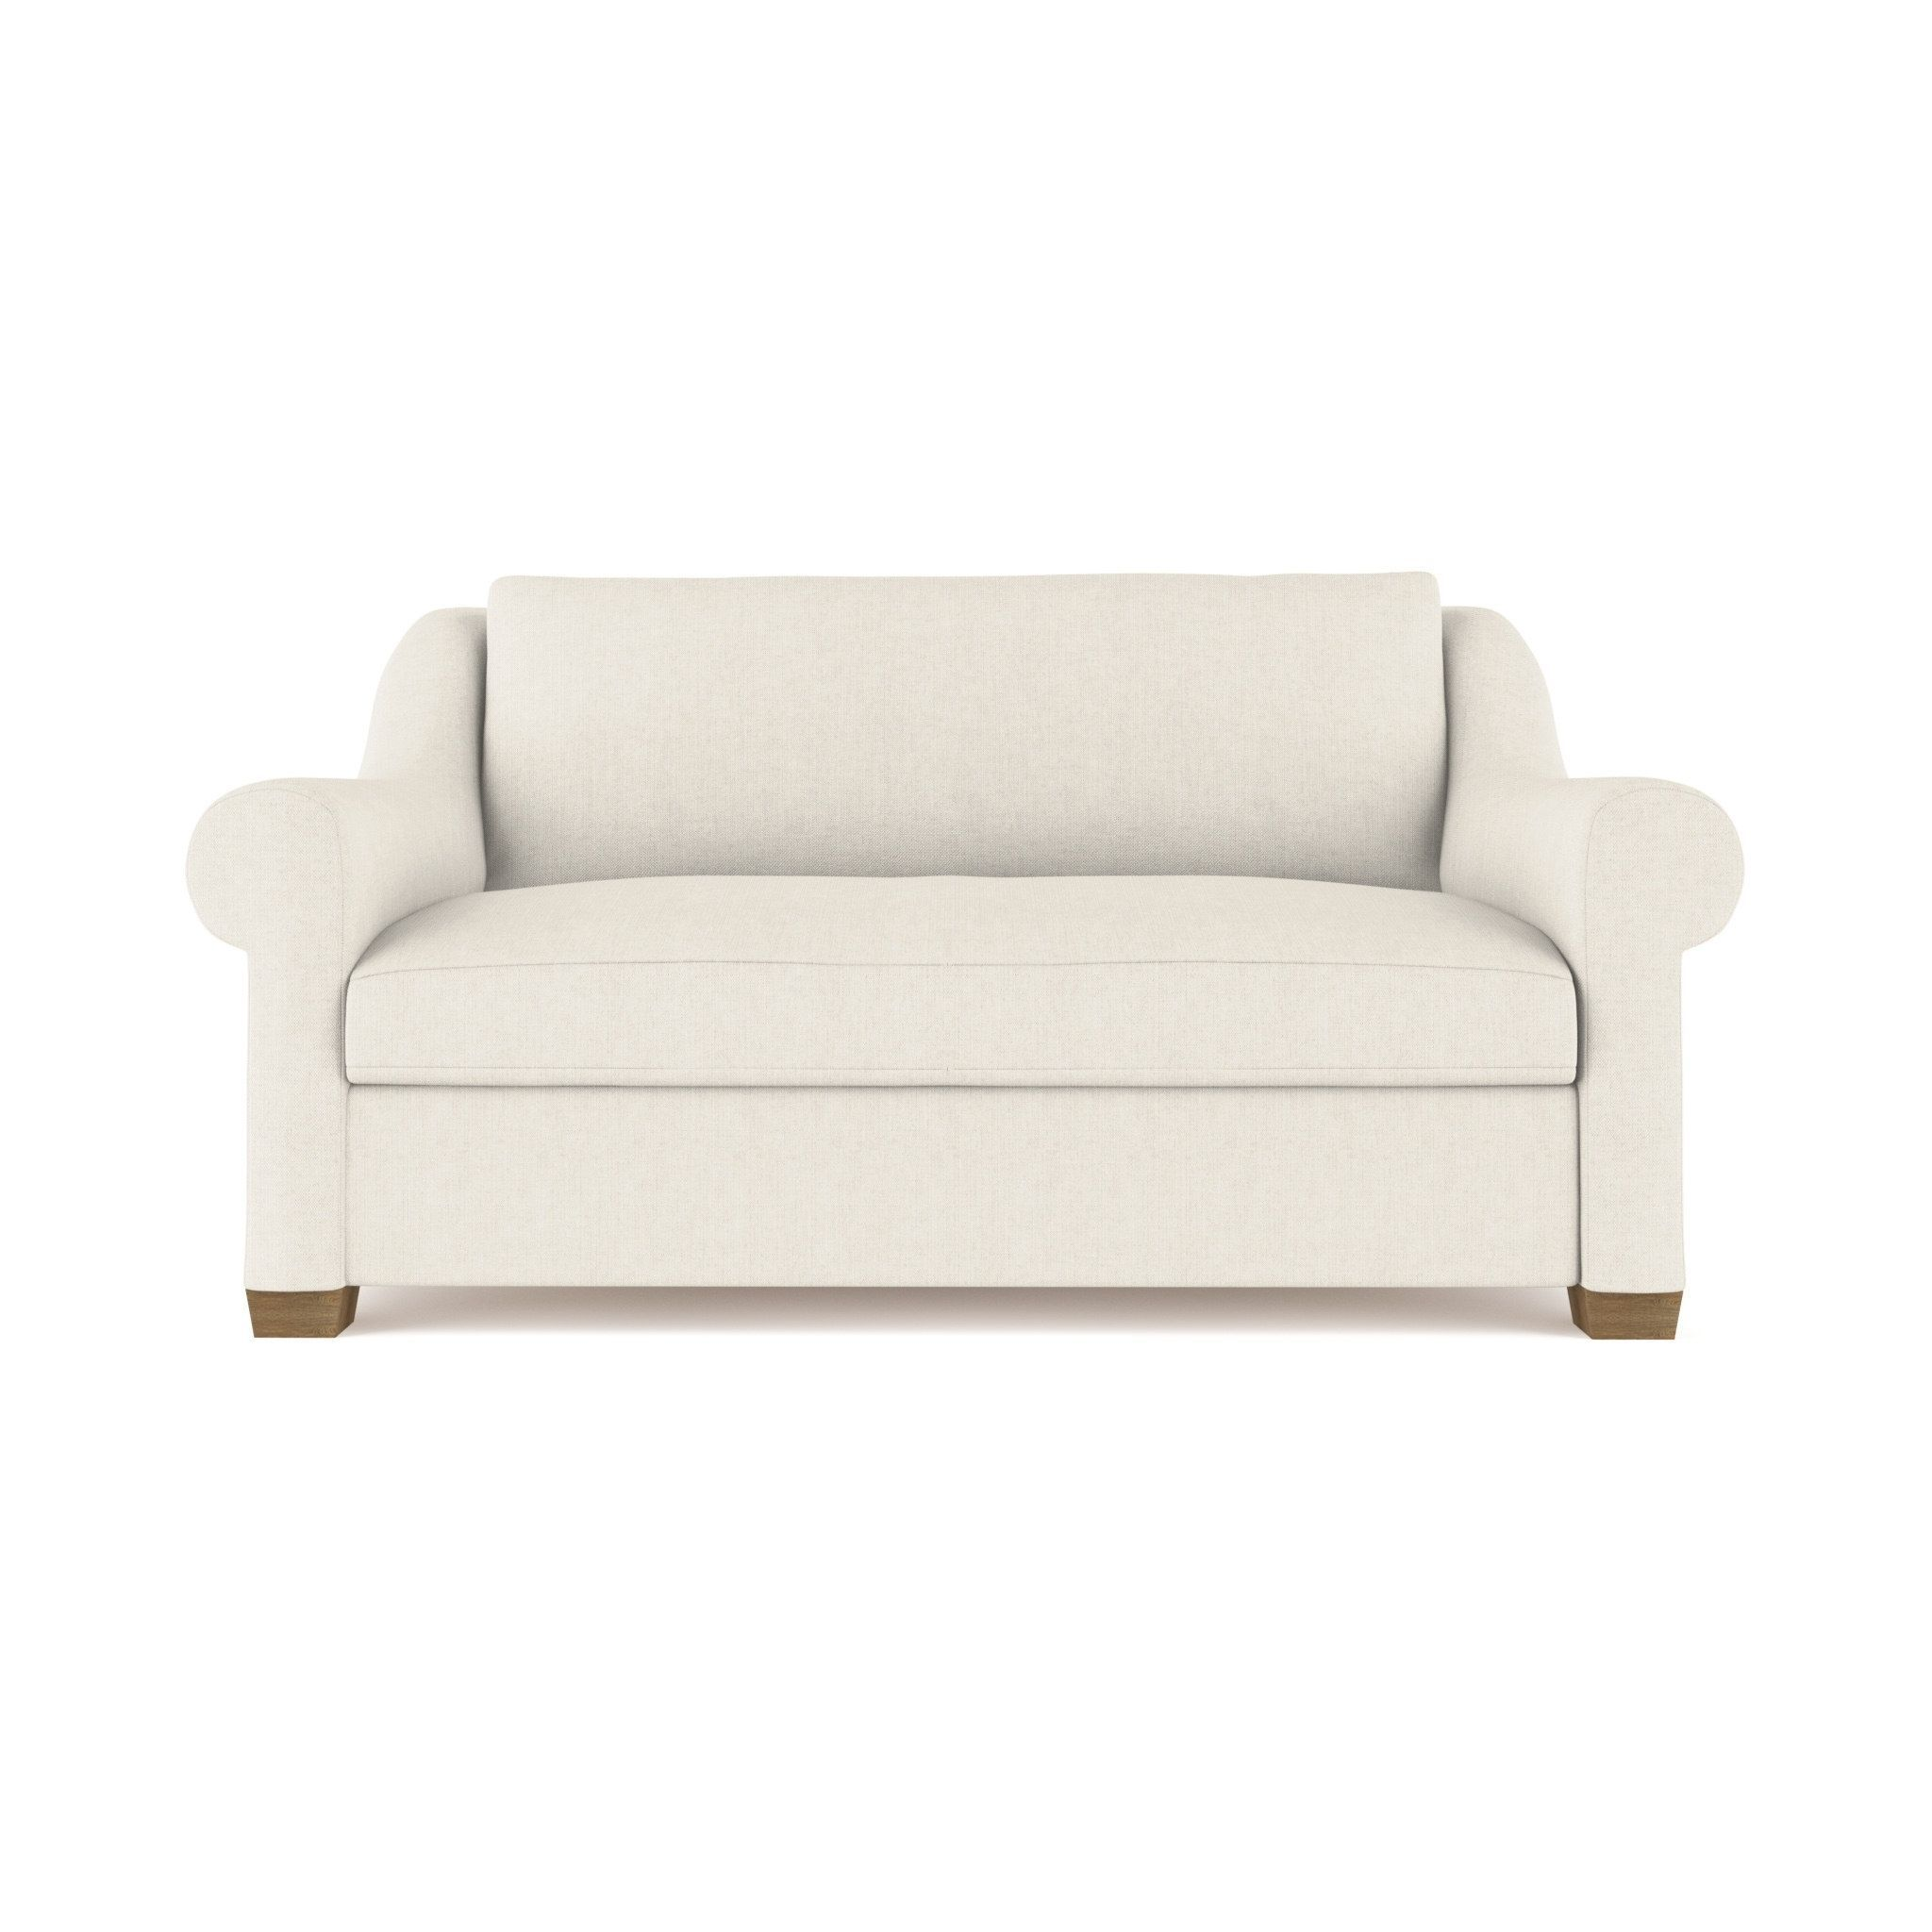 Abingdon Ivory Linen Sofa Custom Made to Order TAG by Tandem